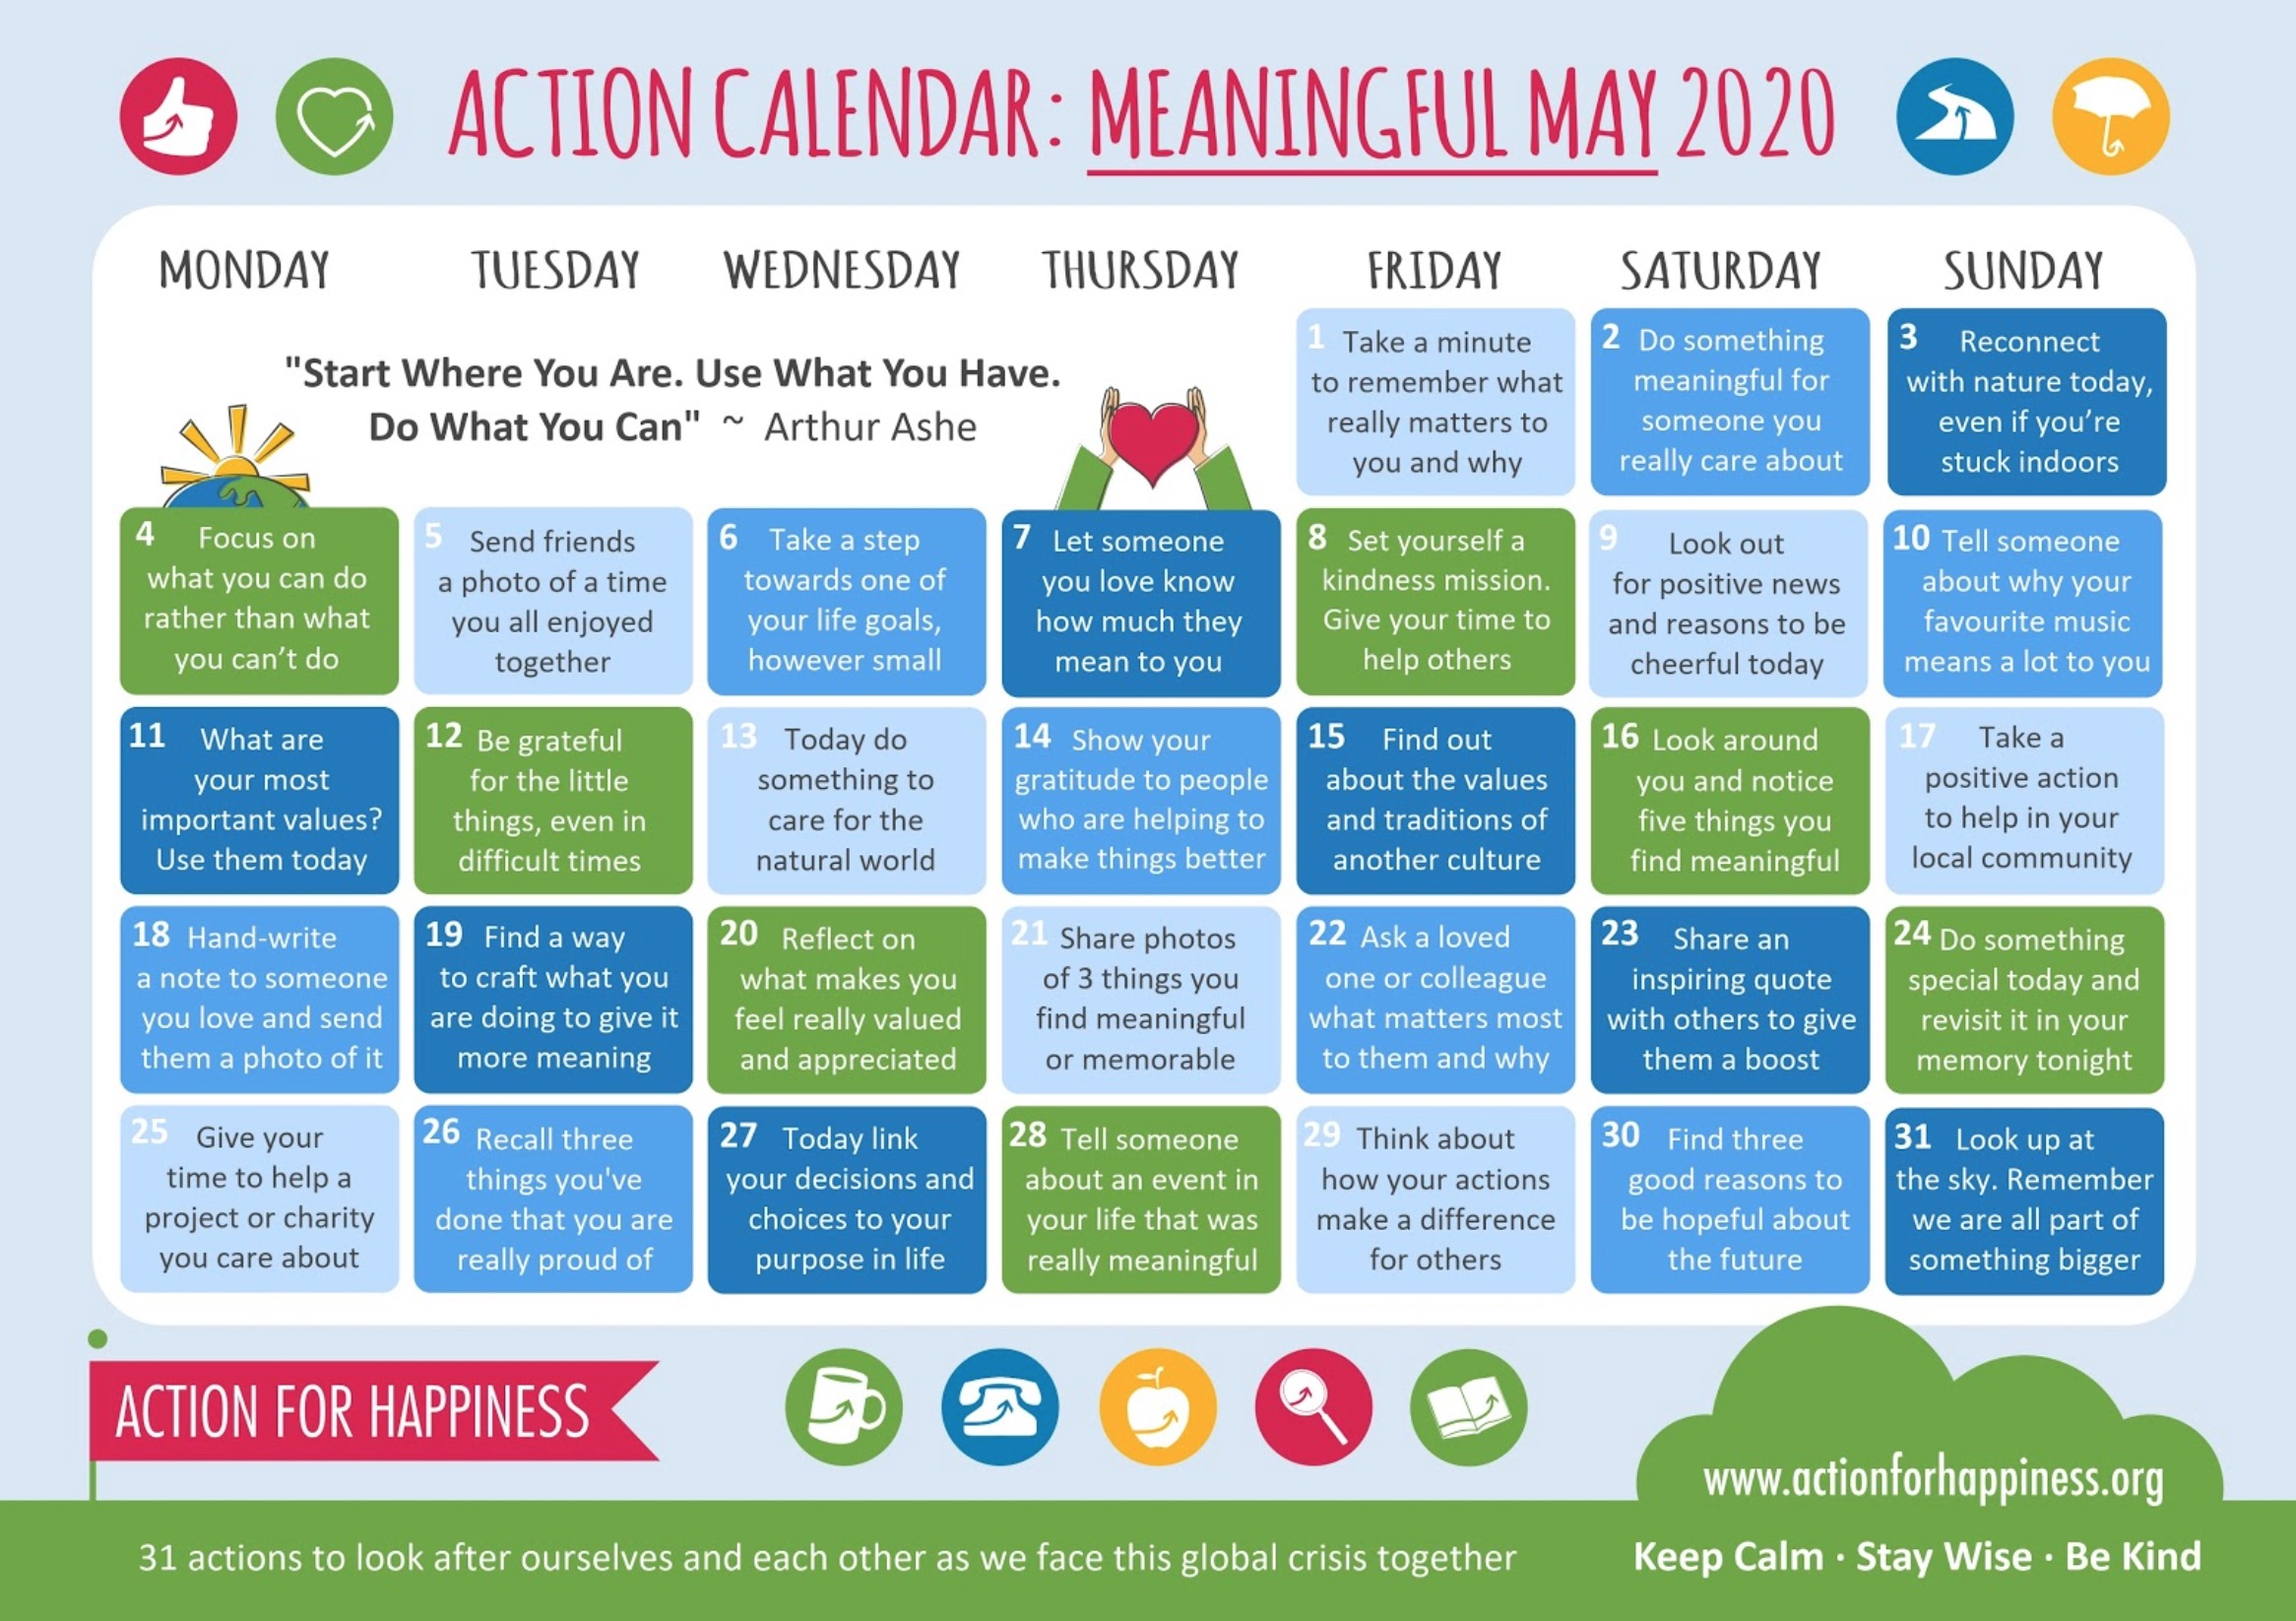 Action Calendar: Meaningful May